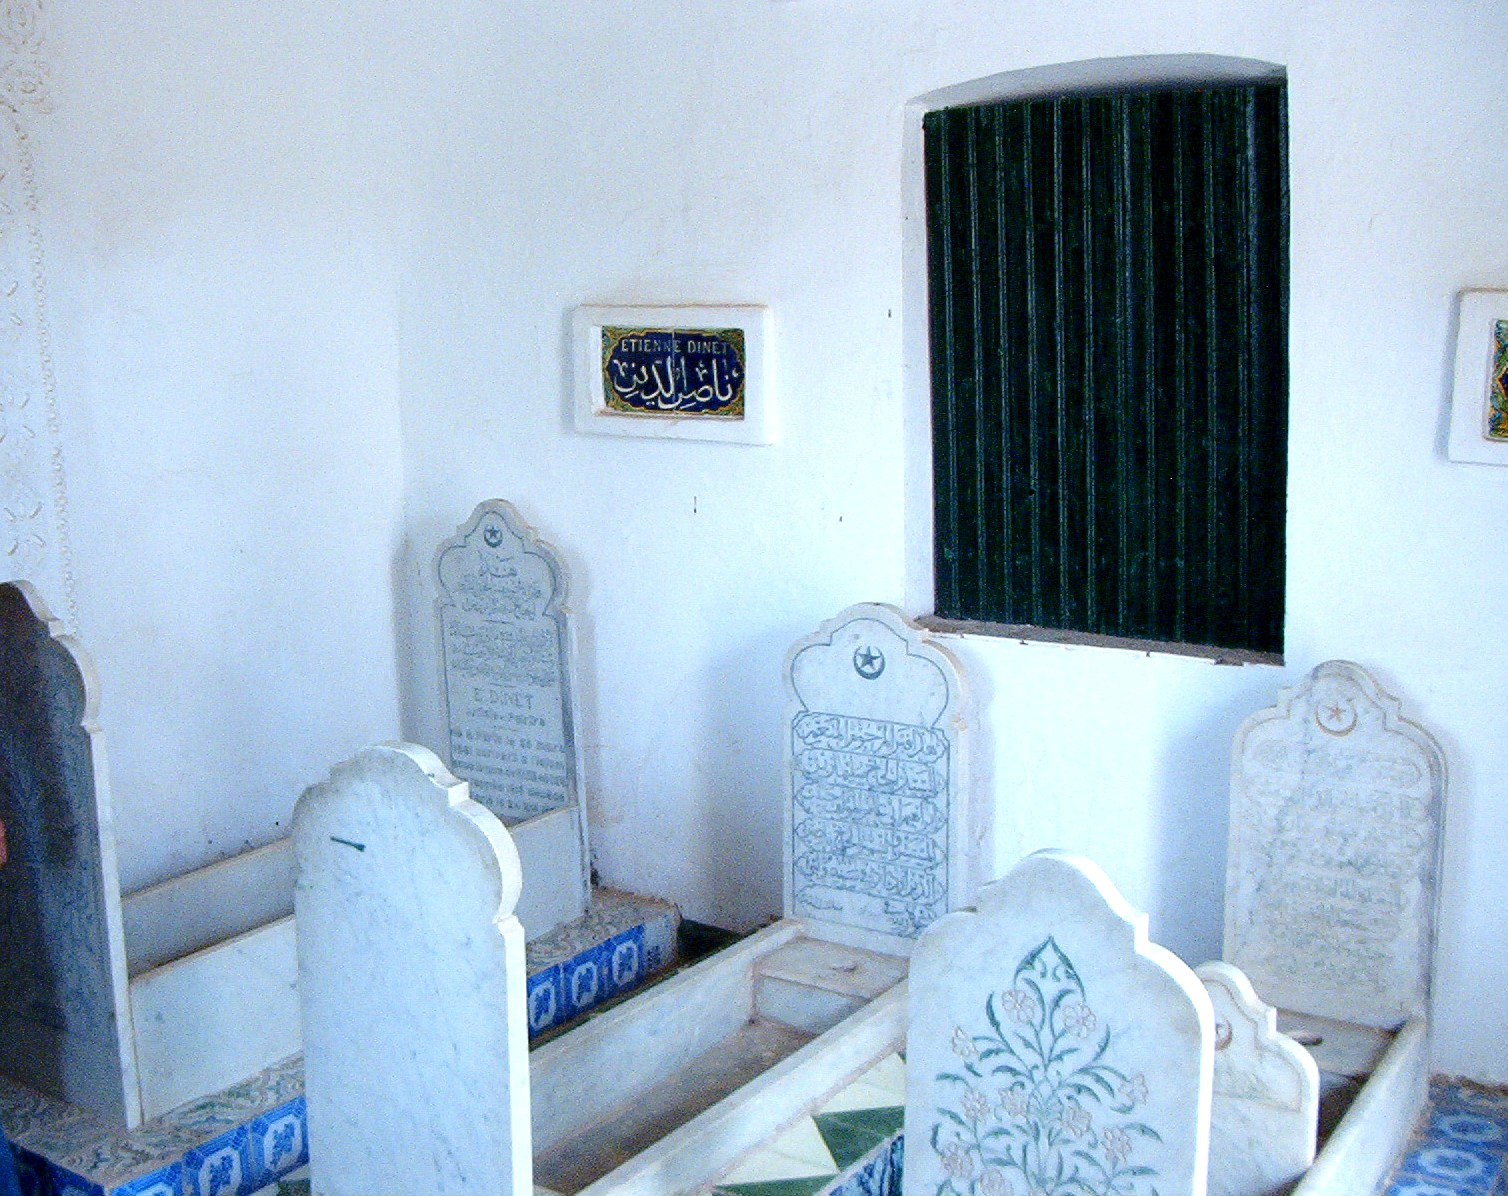 Image result for Photo of the grave of Etienne Dinet in Bou Saada, Algeria